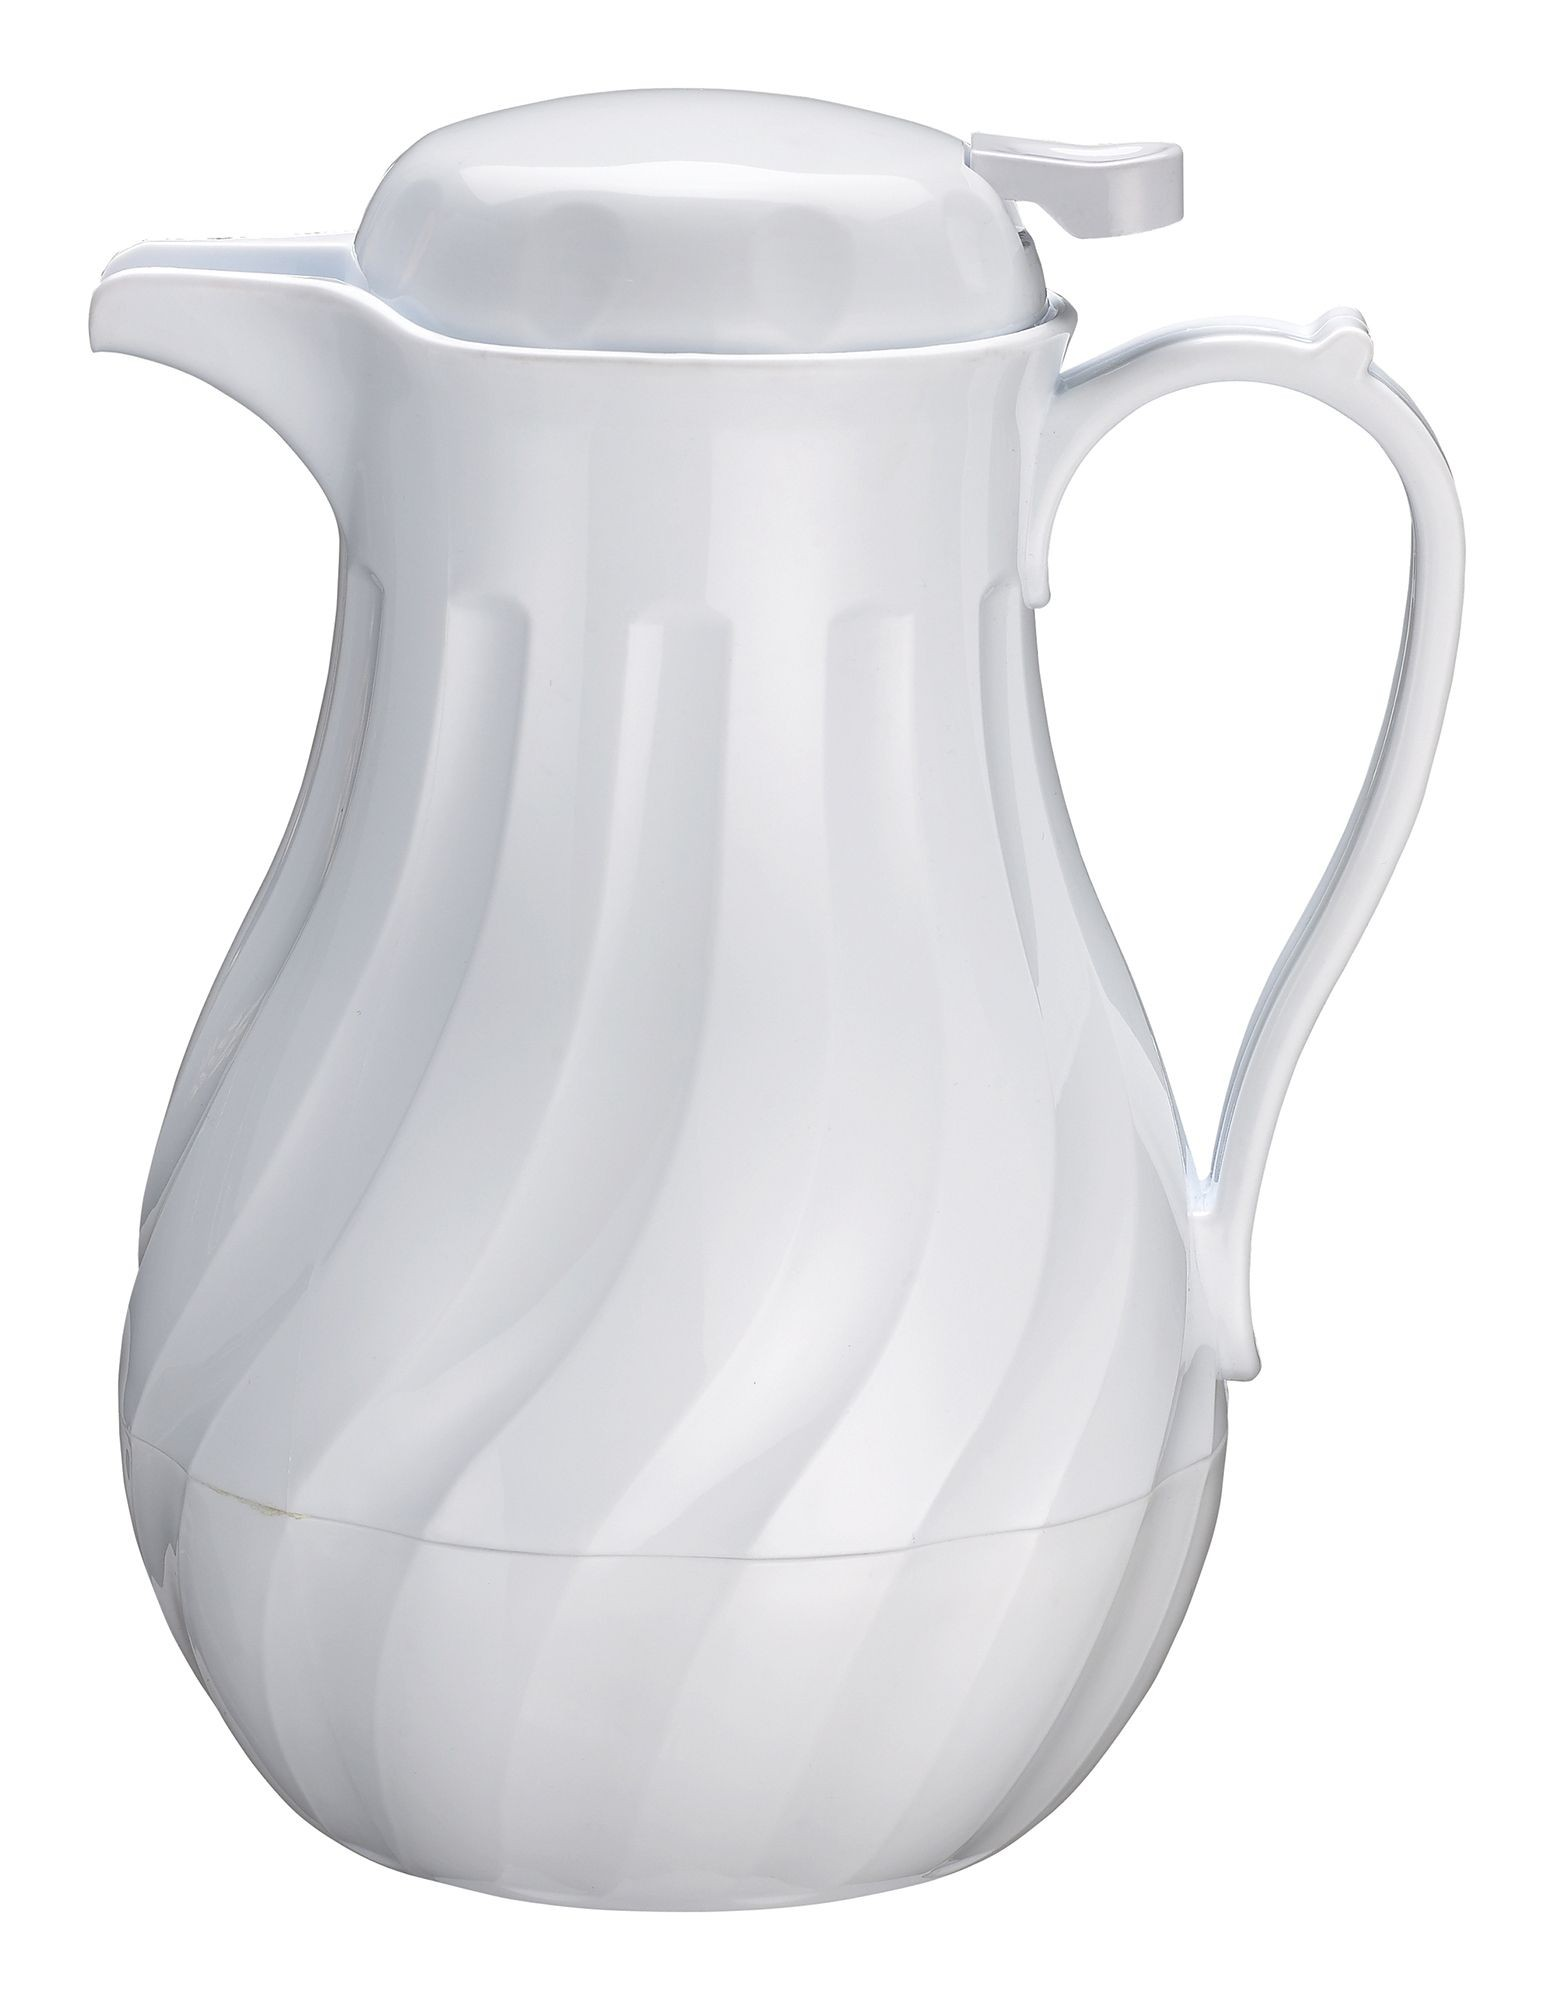 Winco VSW-42W White Insulated Swirl Design Beverage Server 42 oz.